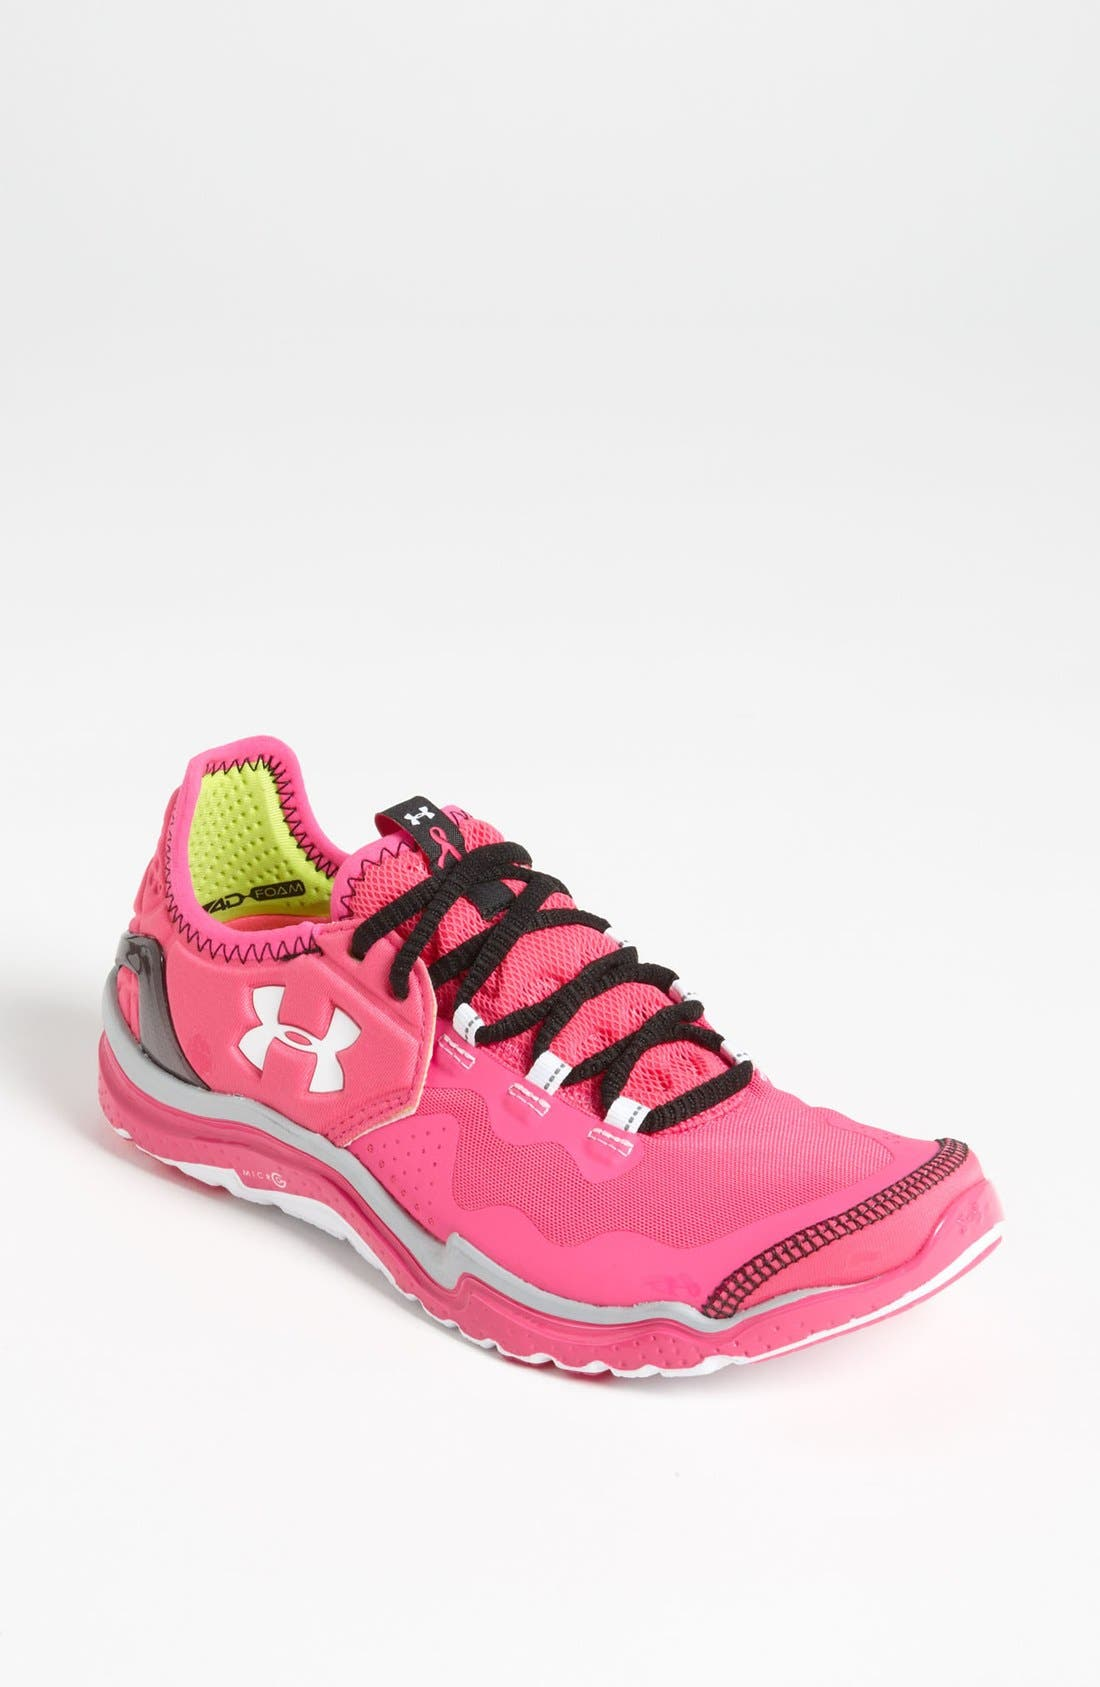 Alternate Image 1 Selected - Under Armour 'Charge RC 2 PIP' Running Shoe (Women)